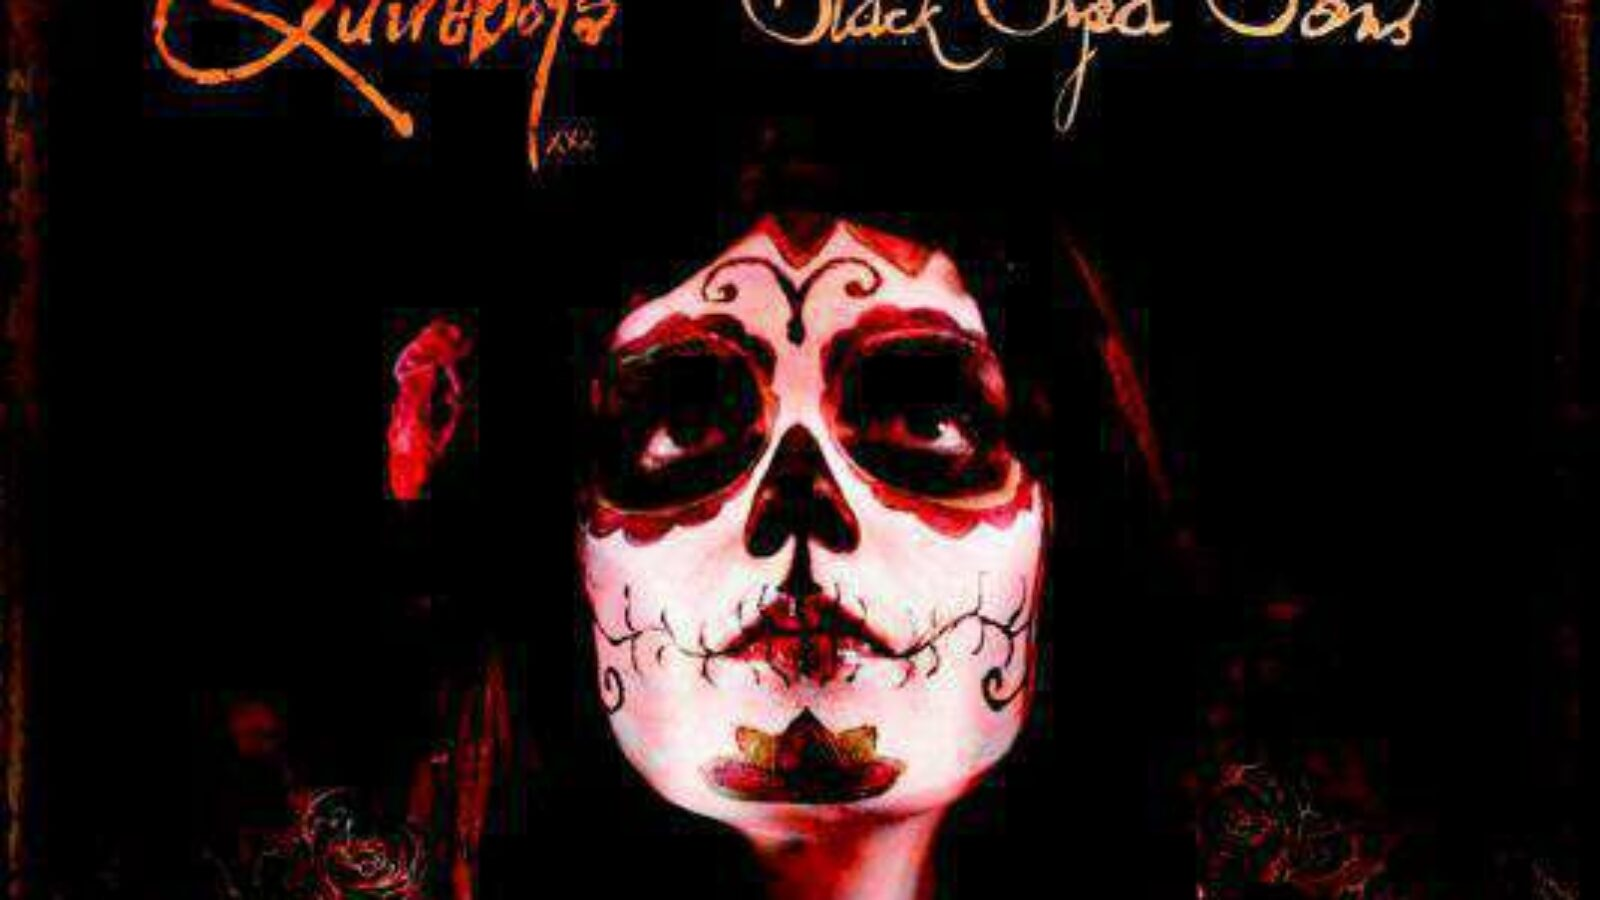 THE QUIREBOYS – Black Eyed Sons